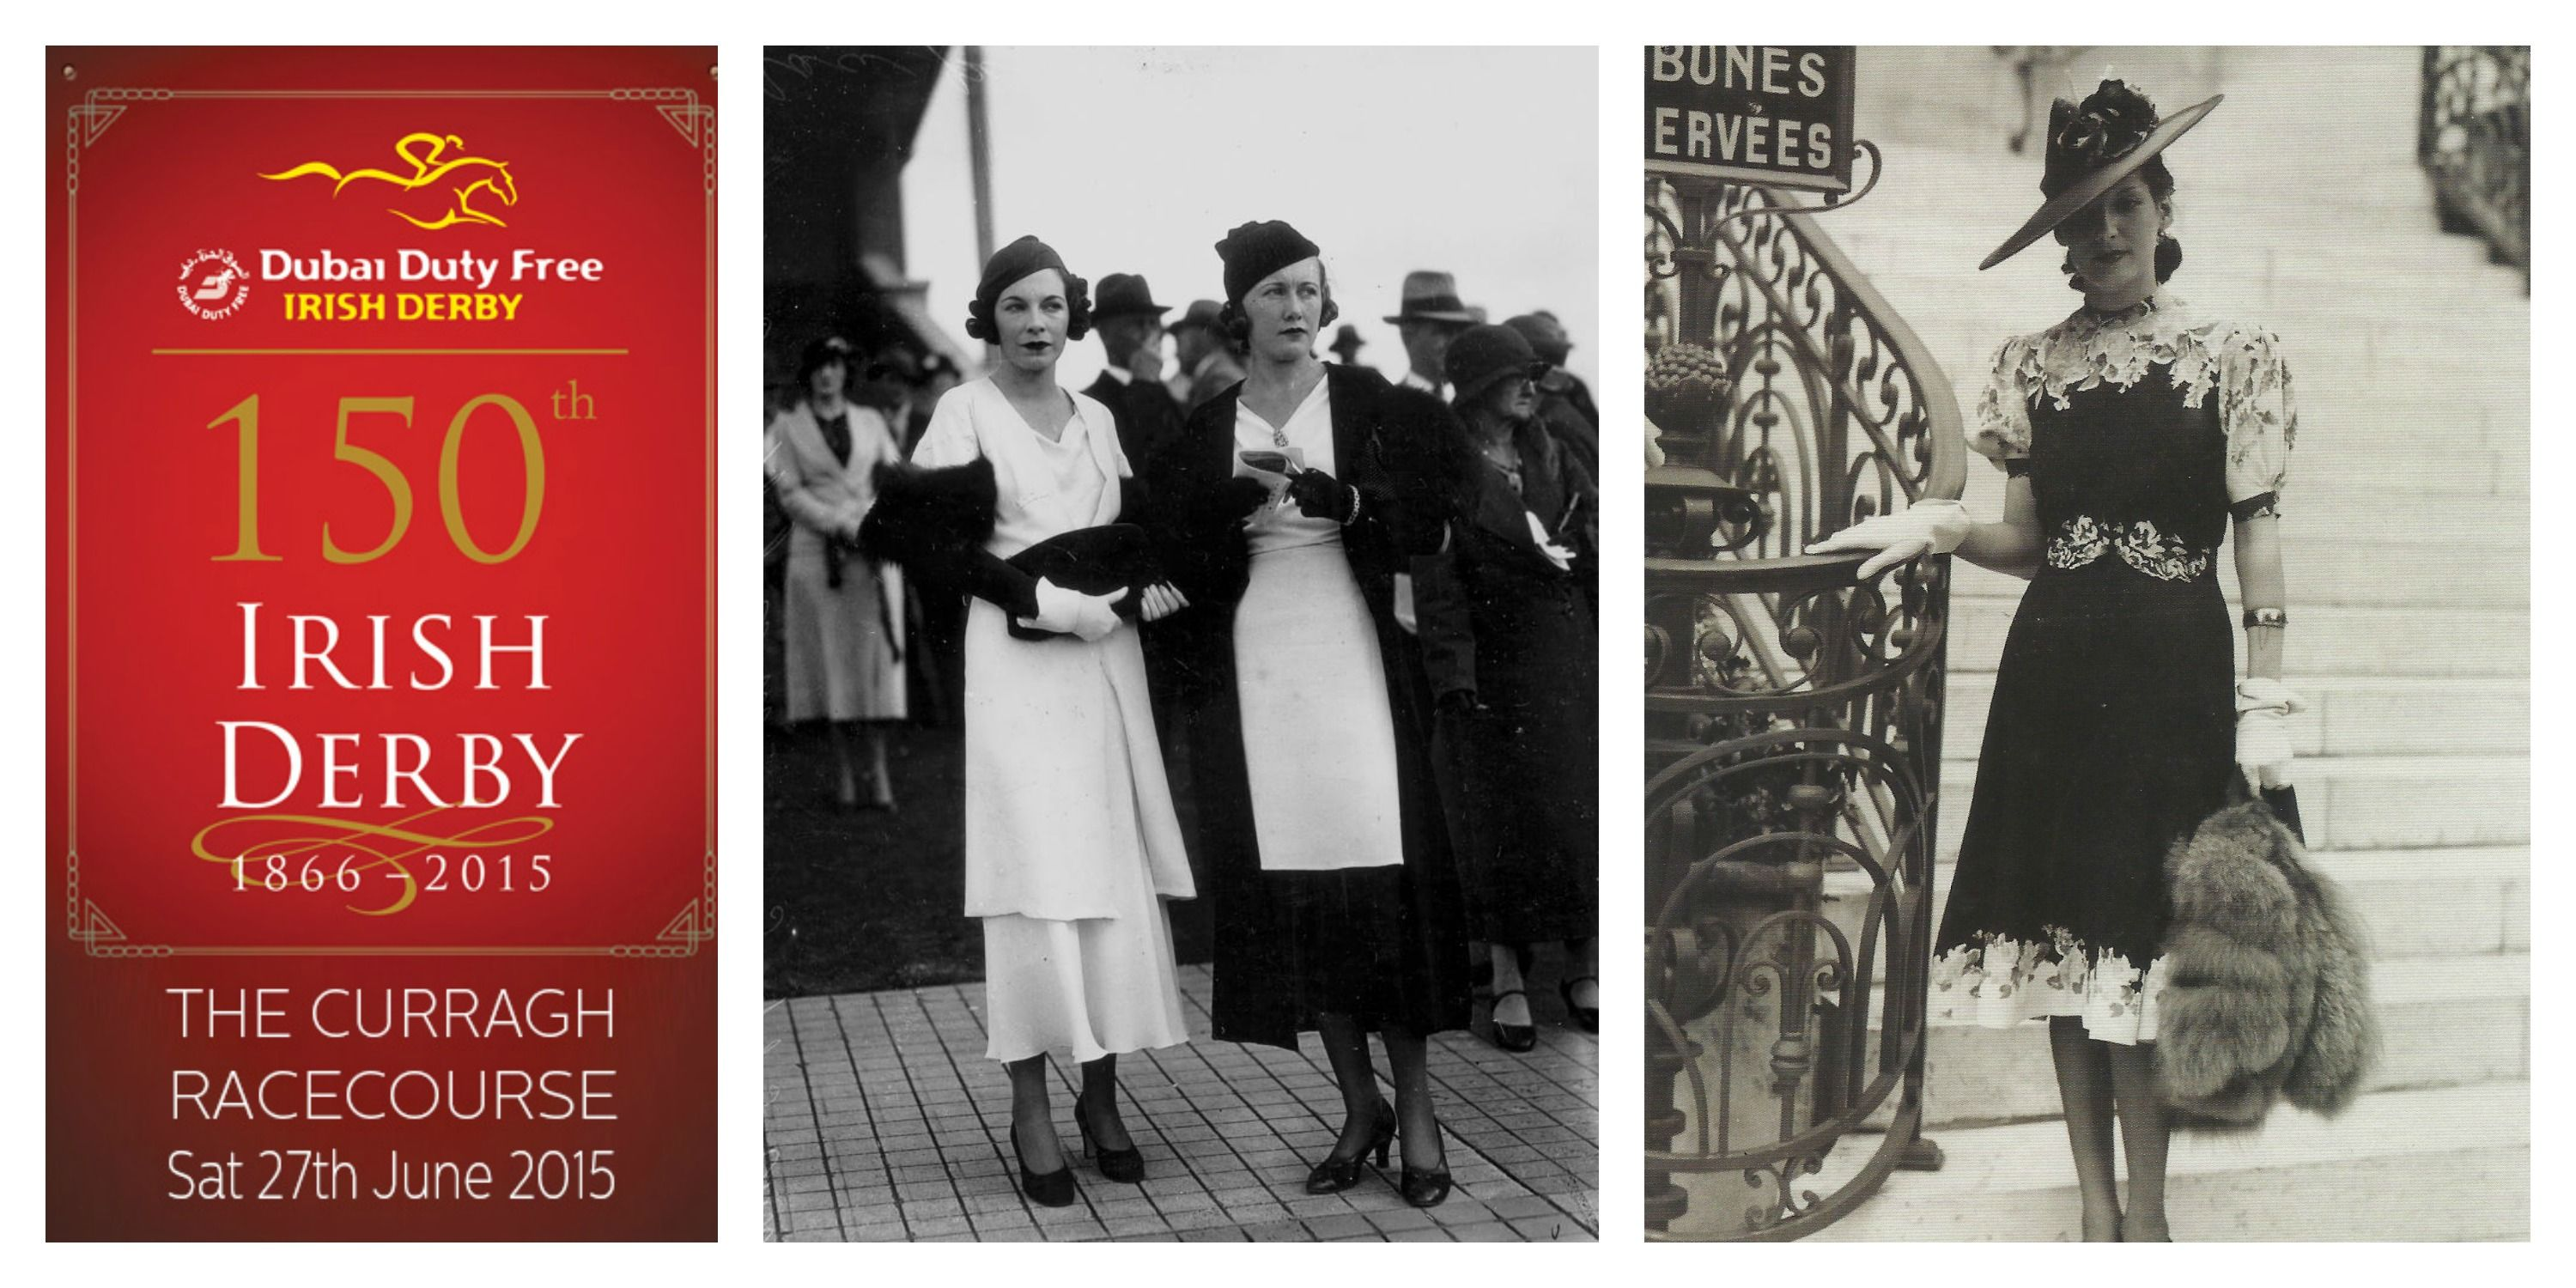 We're looking back 150 years of style at the Irish Derby! The fashion in the 1930s was just fabulous! #IrishDerby150